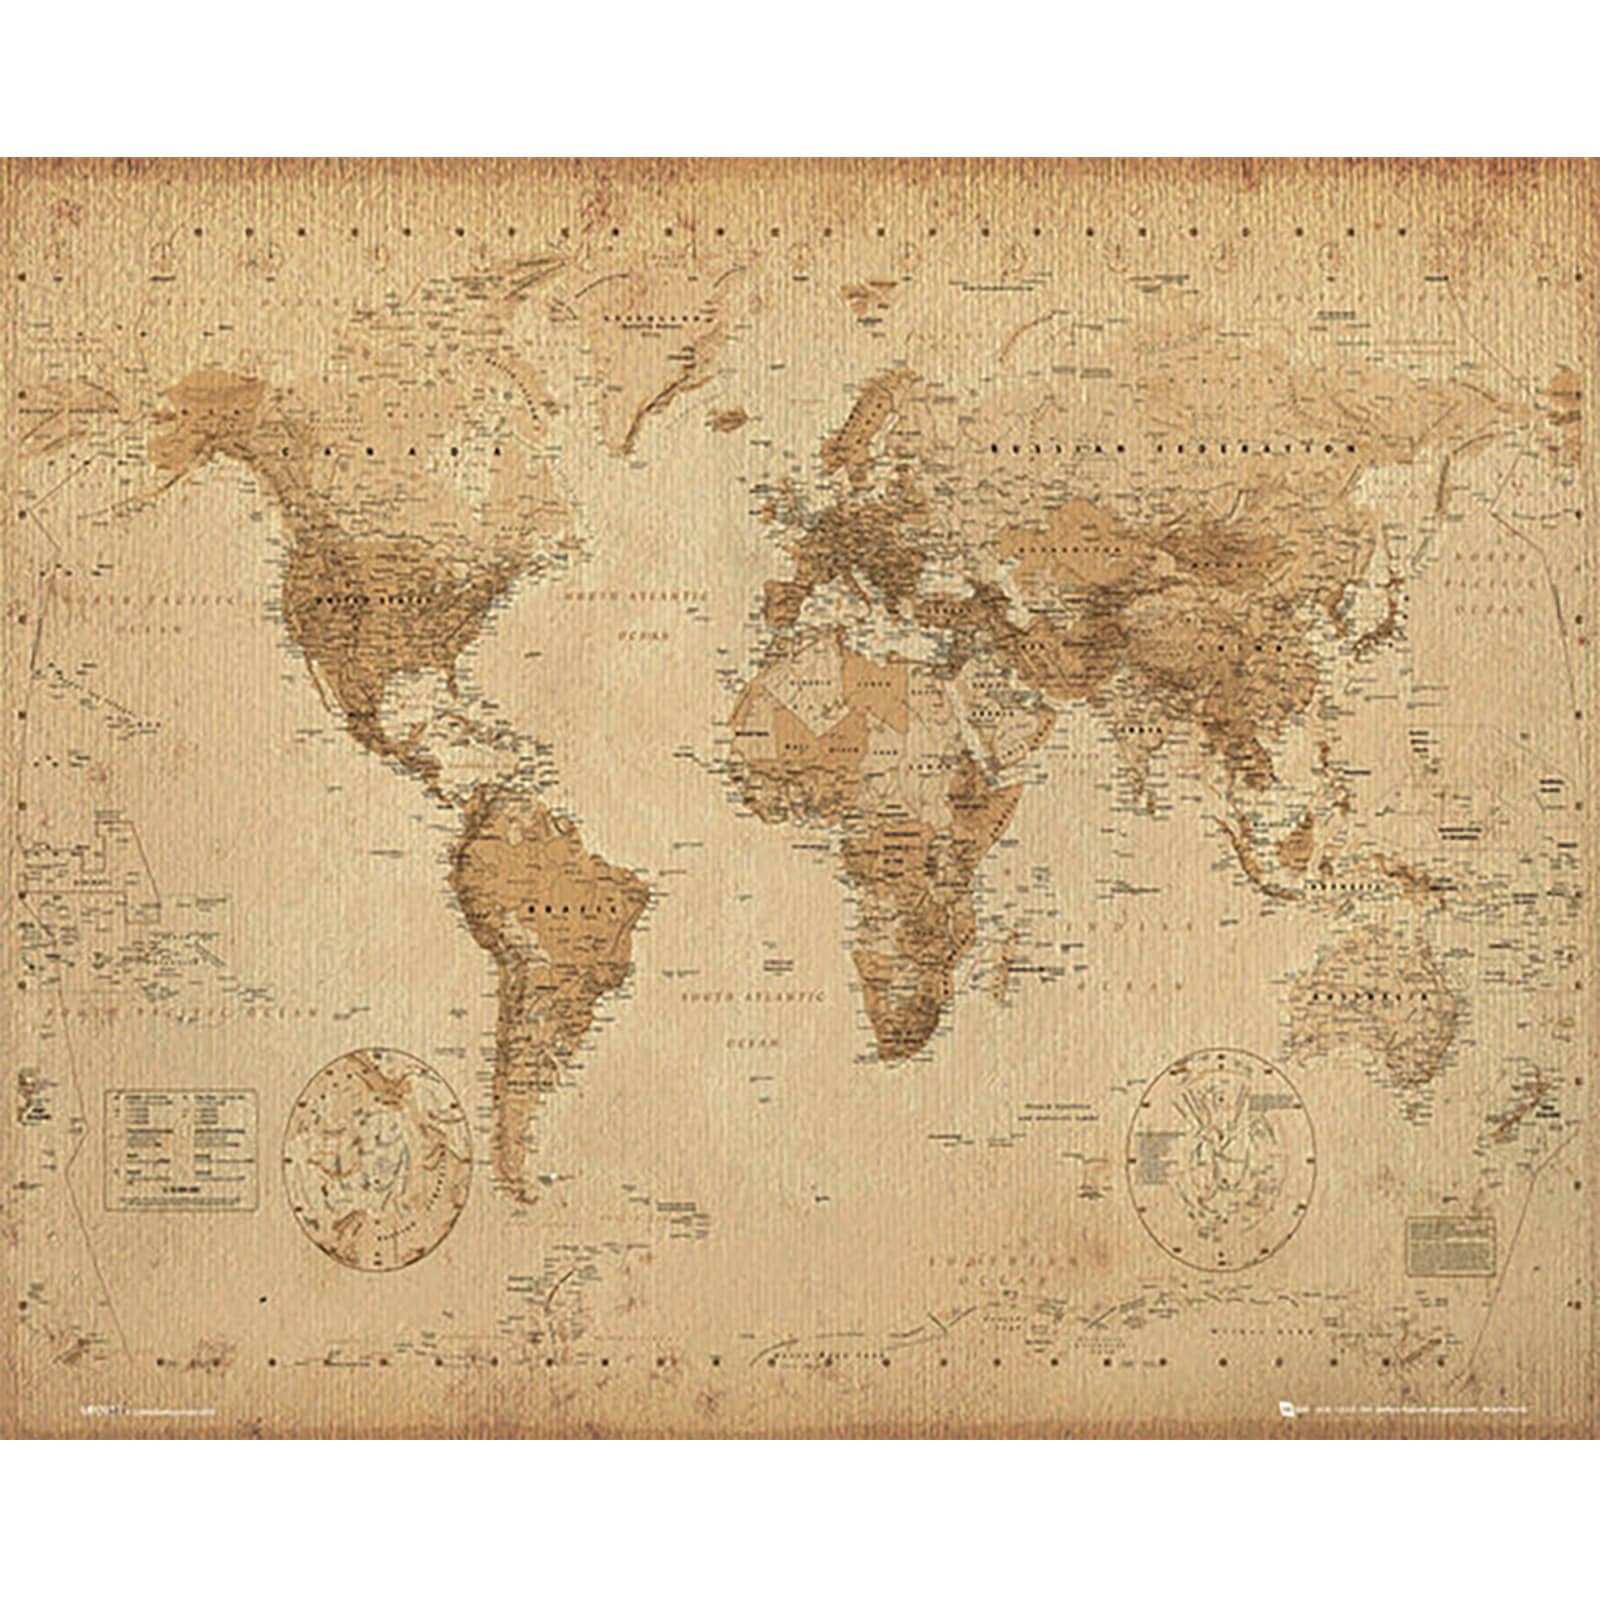 World Map Antique Style - Mini Poster - 40 x 50cm